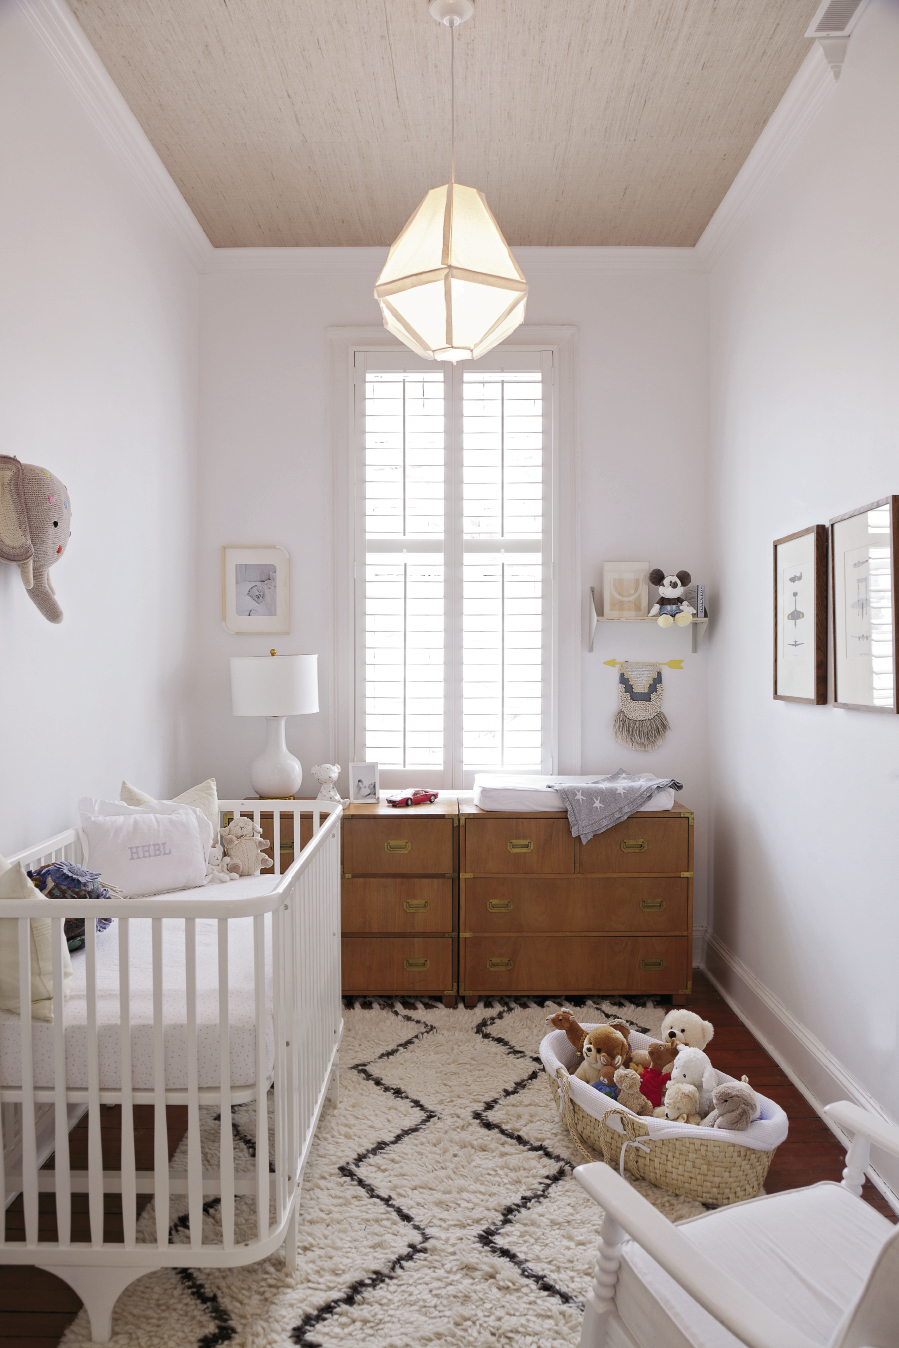 Baby Hugh's nursery (above, right) features a mid-century dresser, handsome grass-cloth ceiling, and vintage airplane prints.